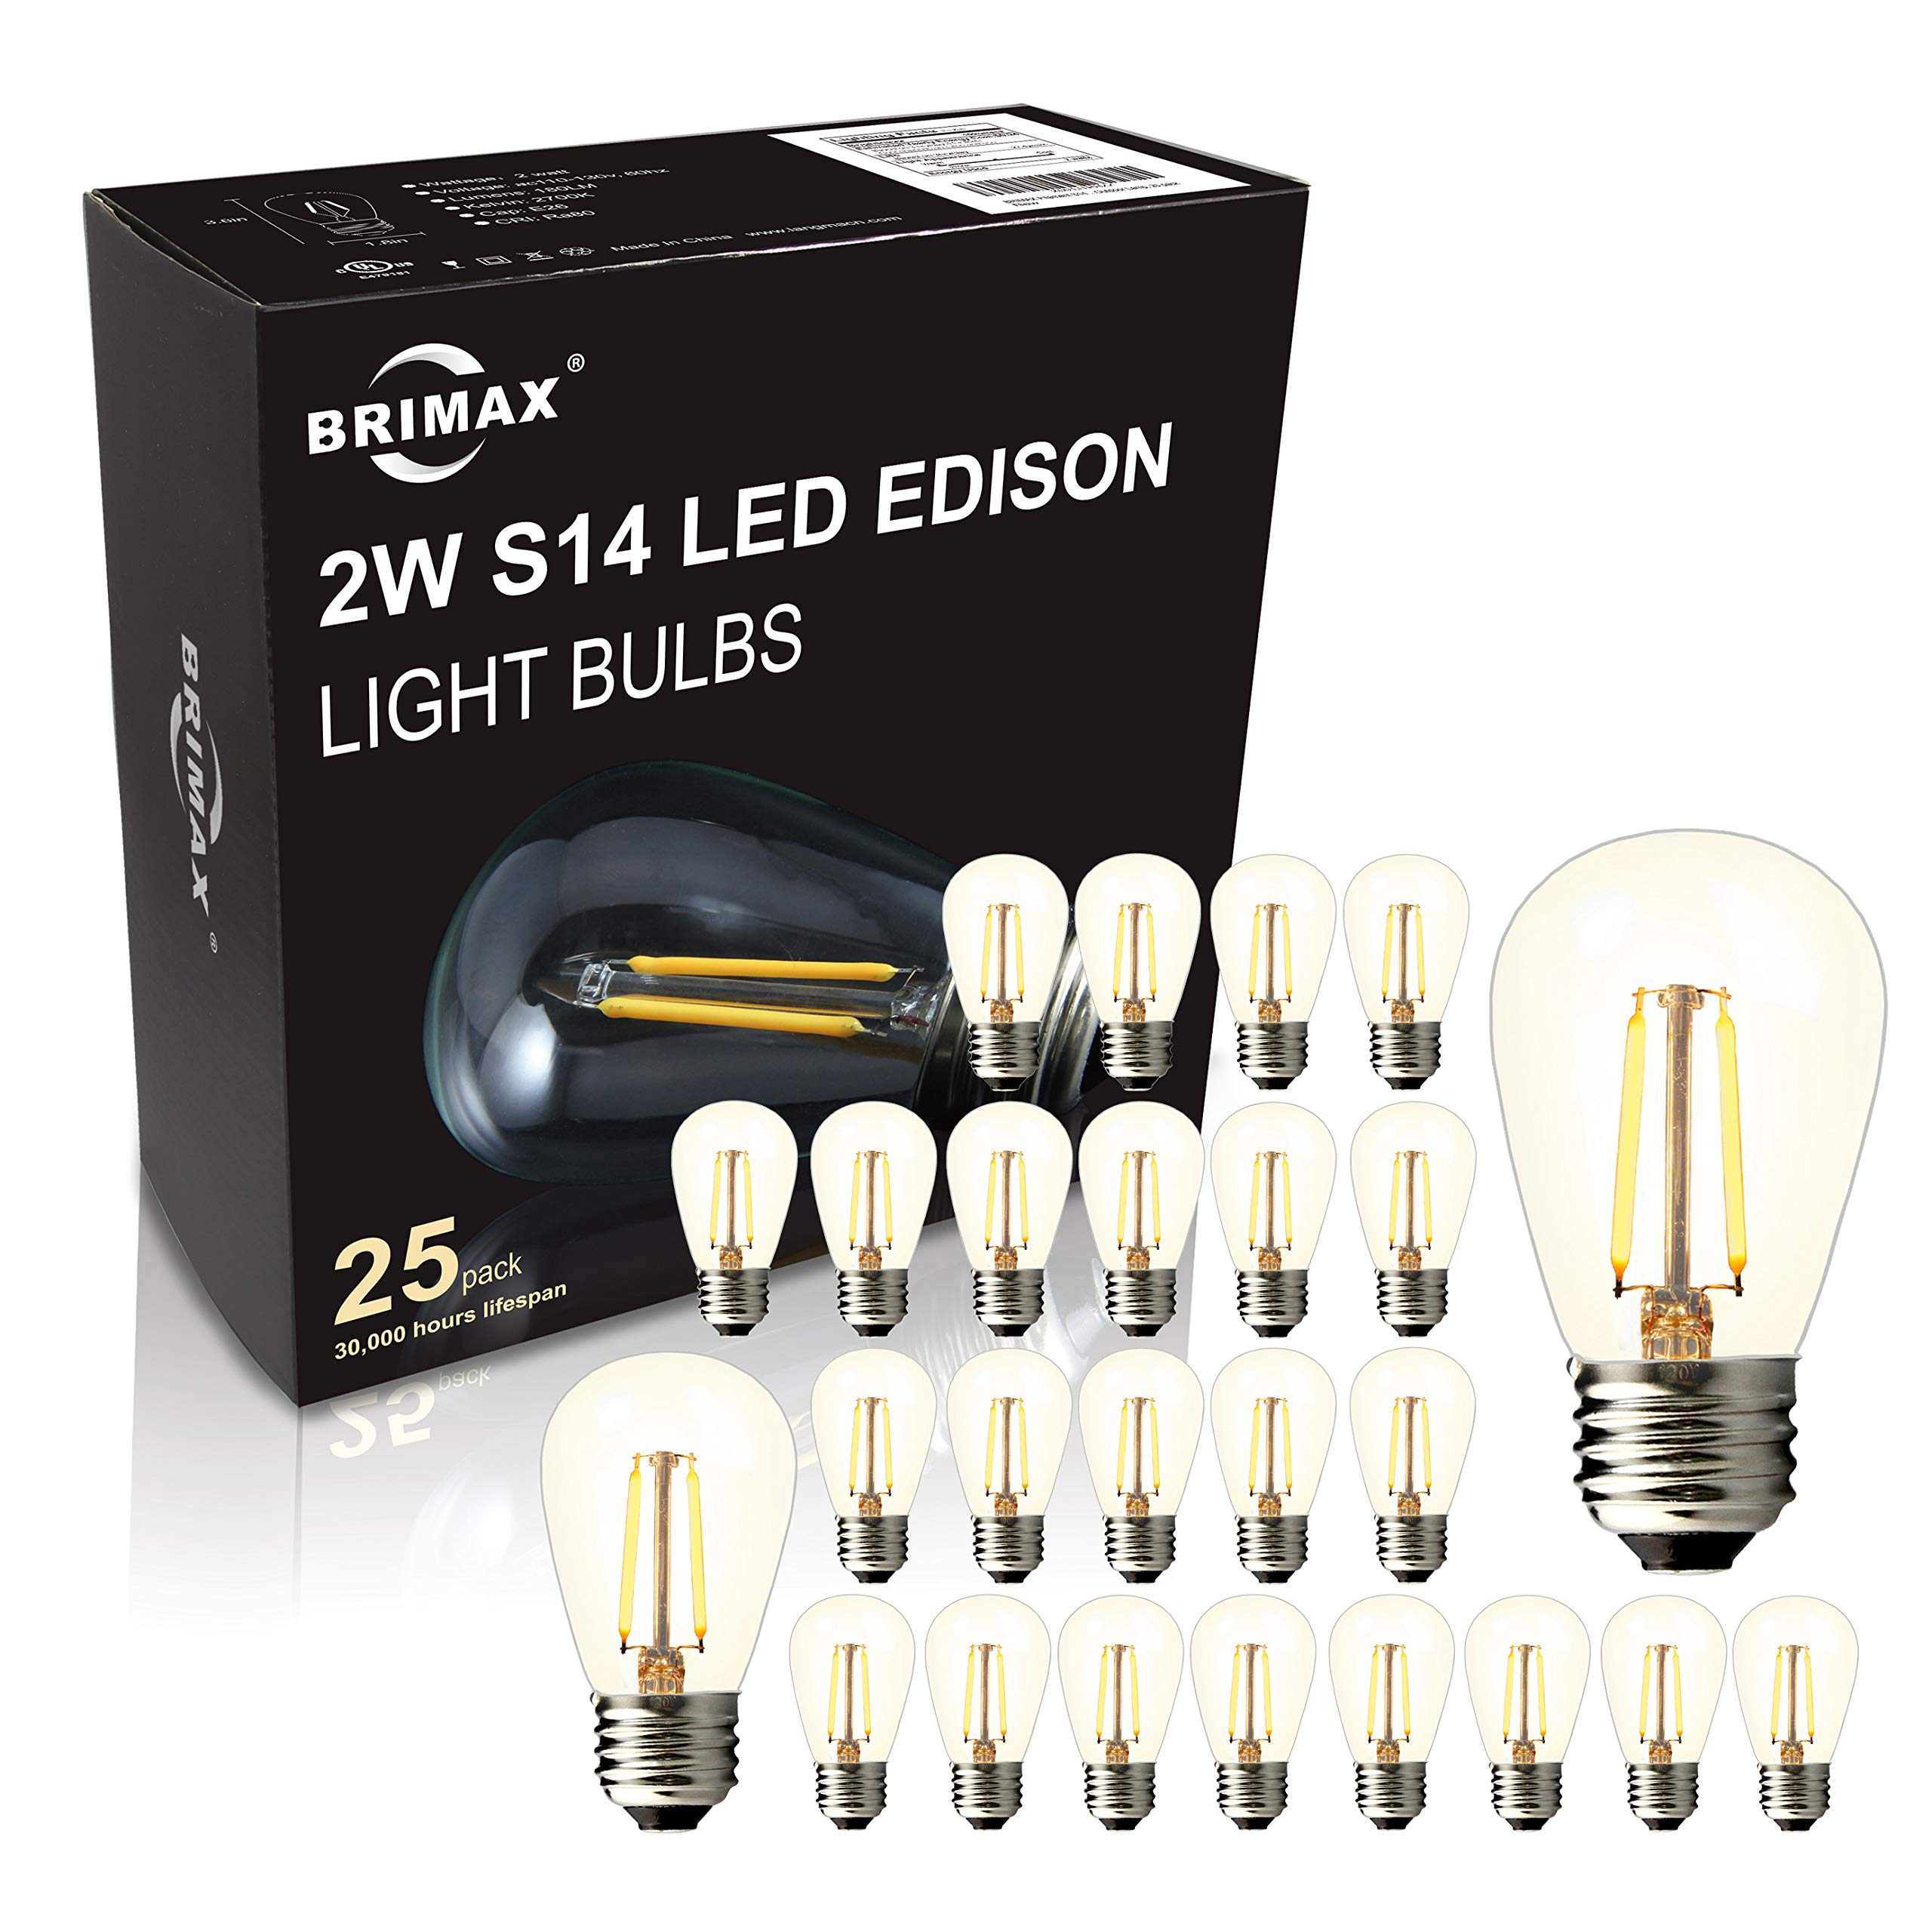 BRIMAX - (25PACK) - 2W S14 LED Outdoor Edison Light Bulbs for String Light Replacement, E26 Medium Screw Base, Dimmable, 2700K, 2Watt to Replace 11w/15w/20w Incandescent Bulb, Weatherproof